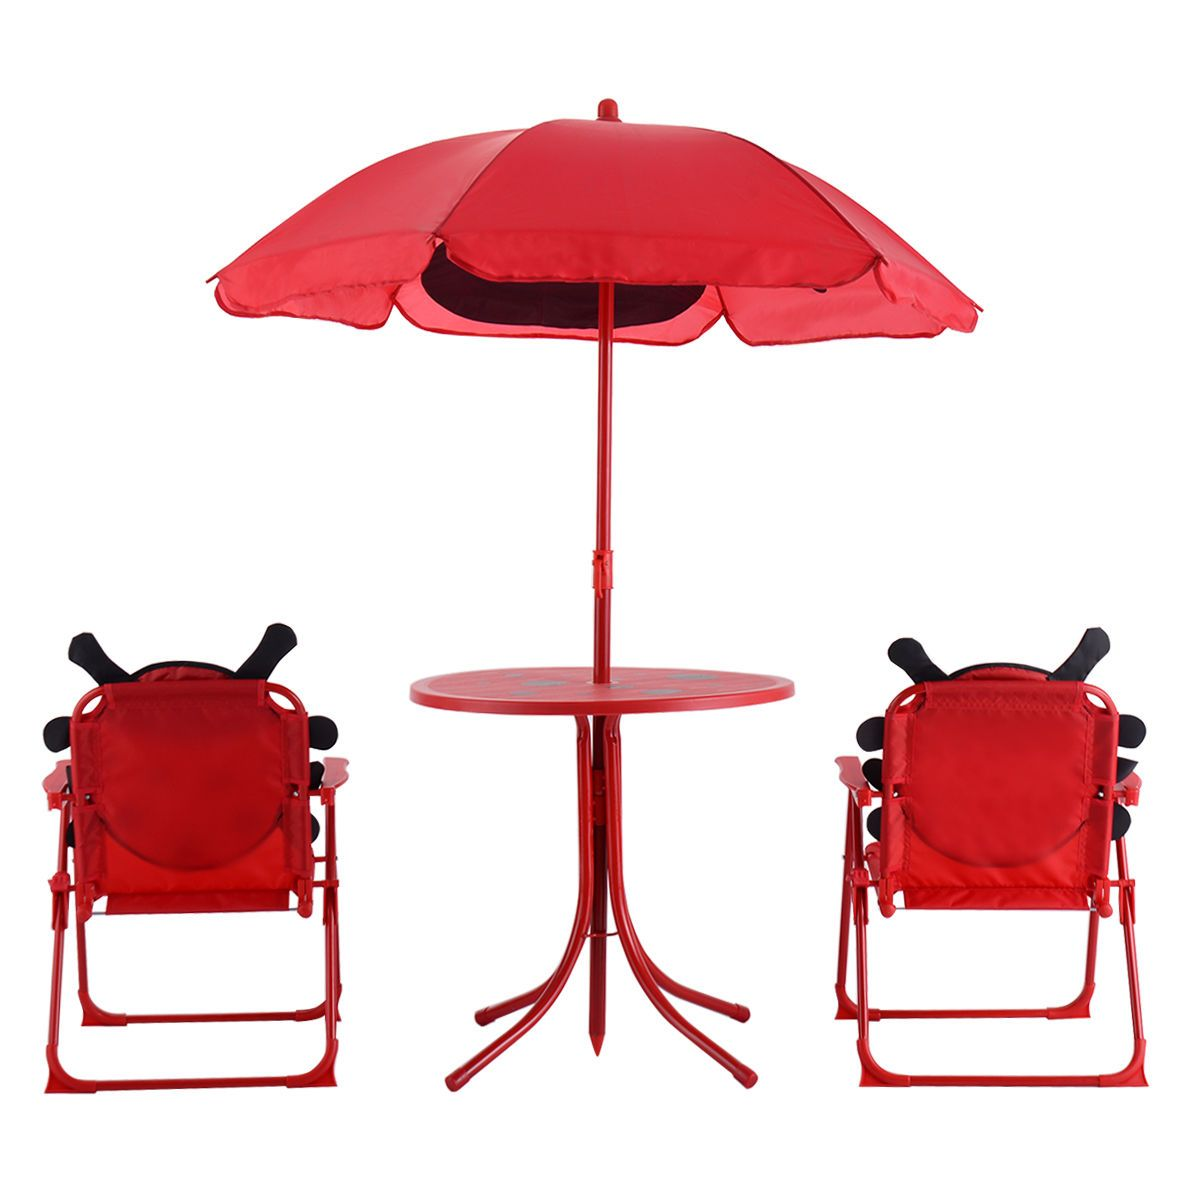 Kids Patio Swing Chair Children Porch Bench Canopy 2 Person Yard Furniture Red  sc 1 st  Pinterest & Kids Patio Swing Chair Children Porch Bench Canopy 2 Person Yard ...